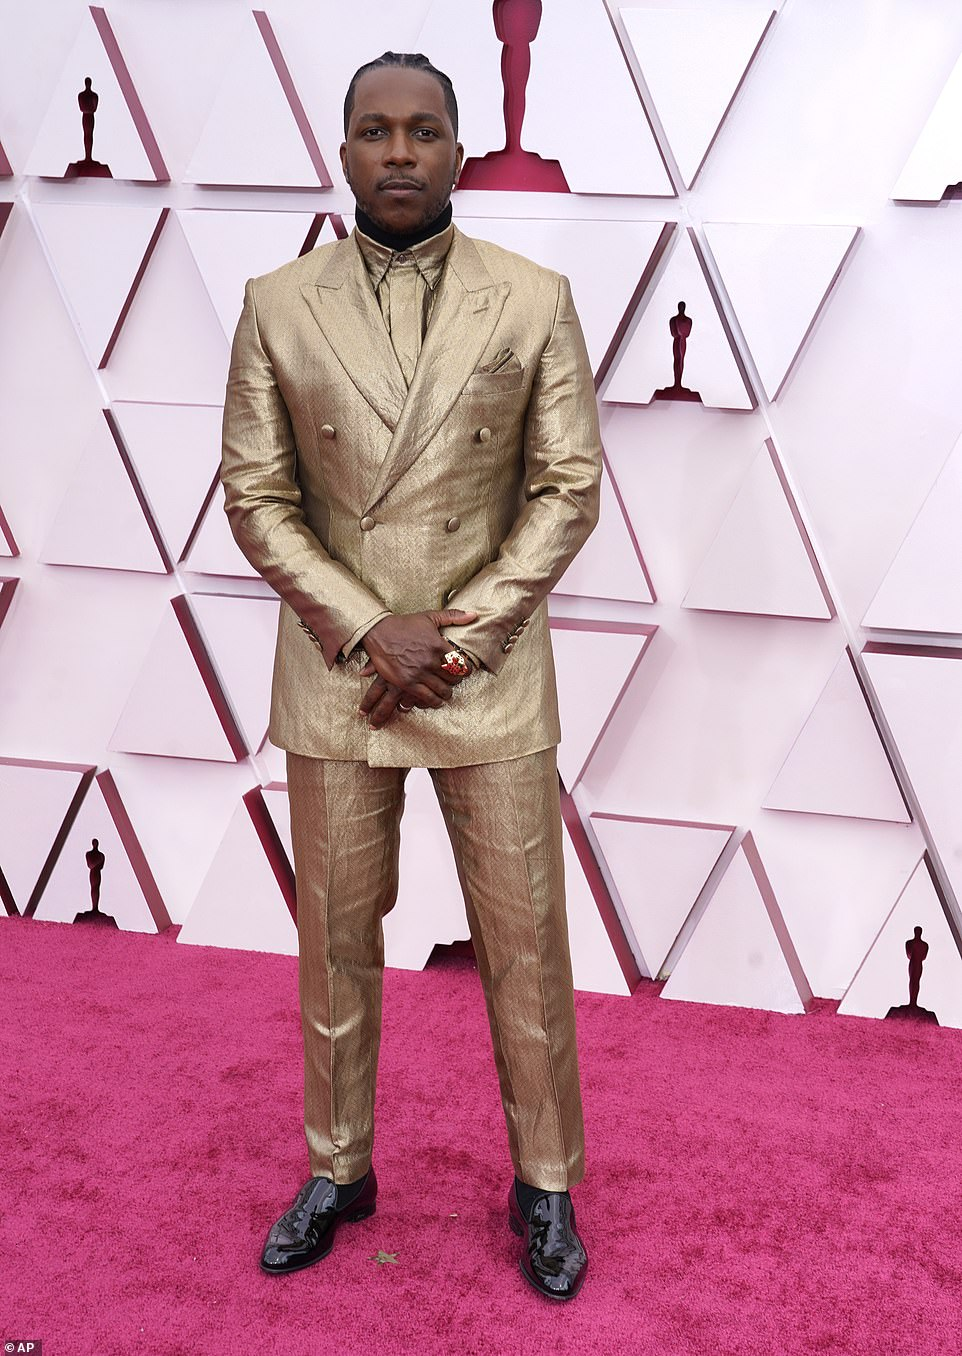 Dapper: Leslie Odom Jr. rocked a gold suit, complete with a matching button-up beneath; Leslie is nominated for two Oscars: Best Supporting Actor for his role in One Night in Miami and Best Original Song for film's main song Speak Now